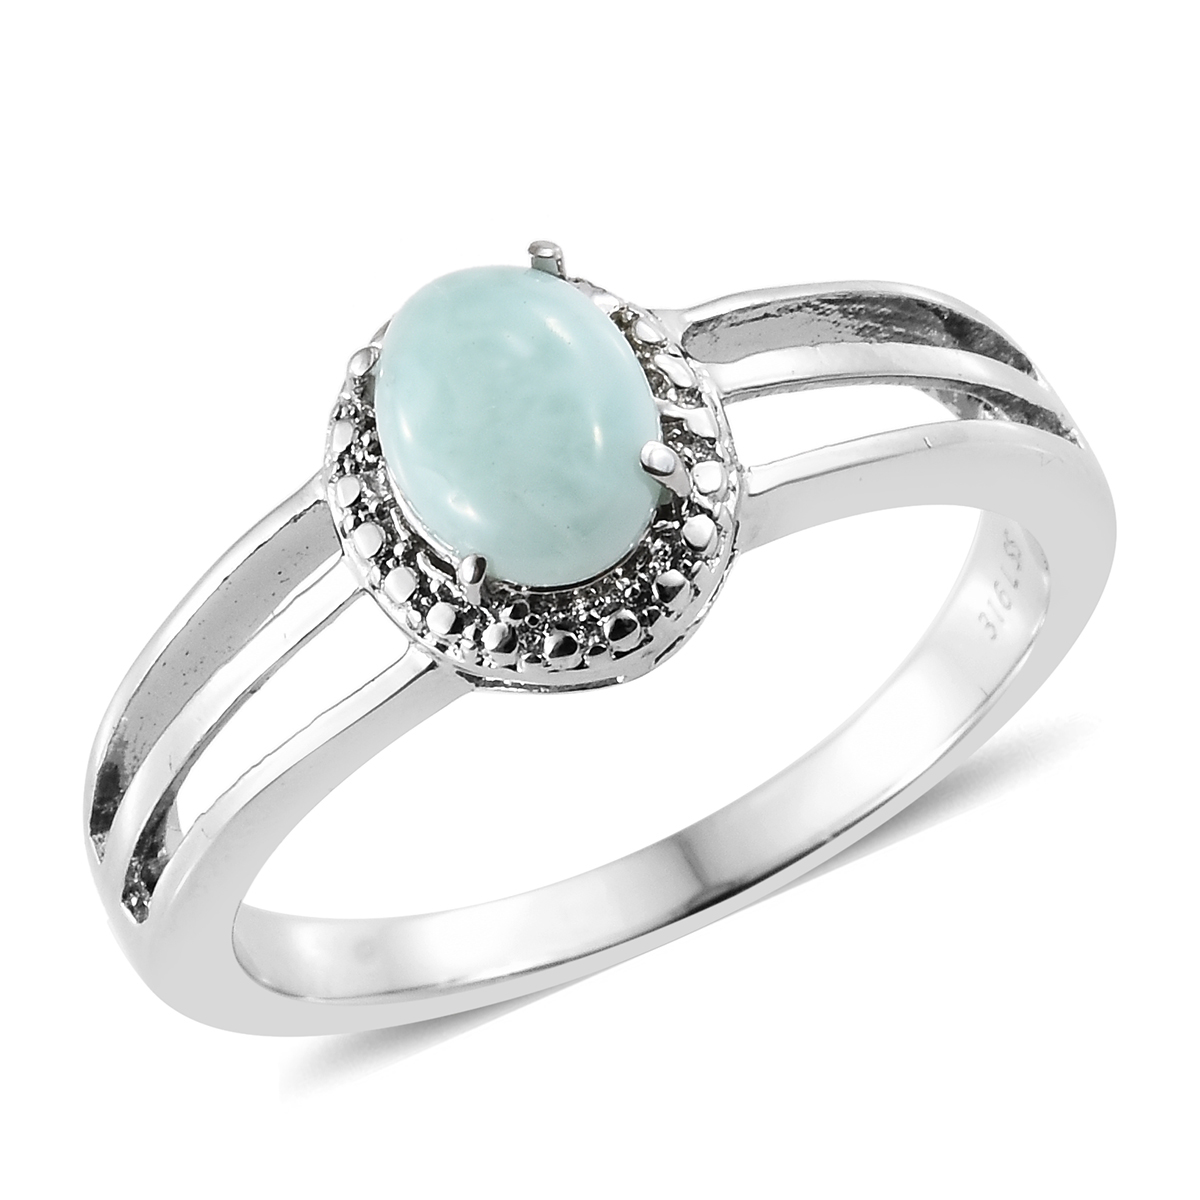 7398c563c Sea Mist Larimar Stainless Steel Ring (Size 6.0) TGW 1.45 cts. | Solitaire  | Rings | Jewelry | online-store | Shop LC